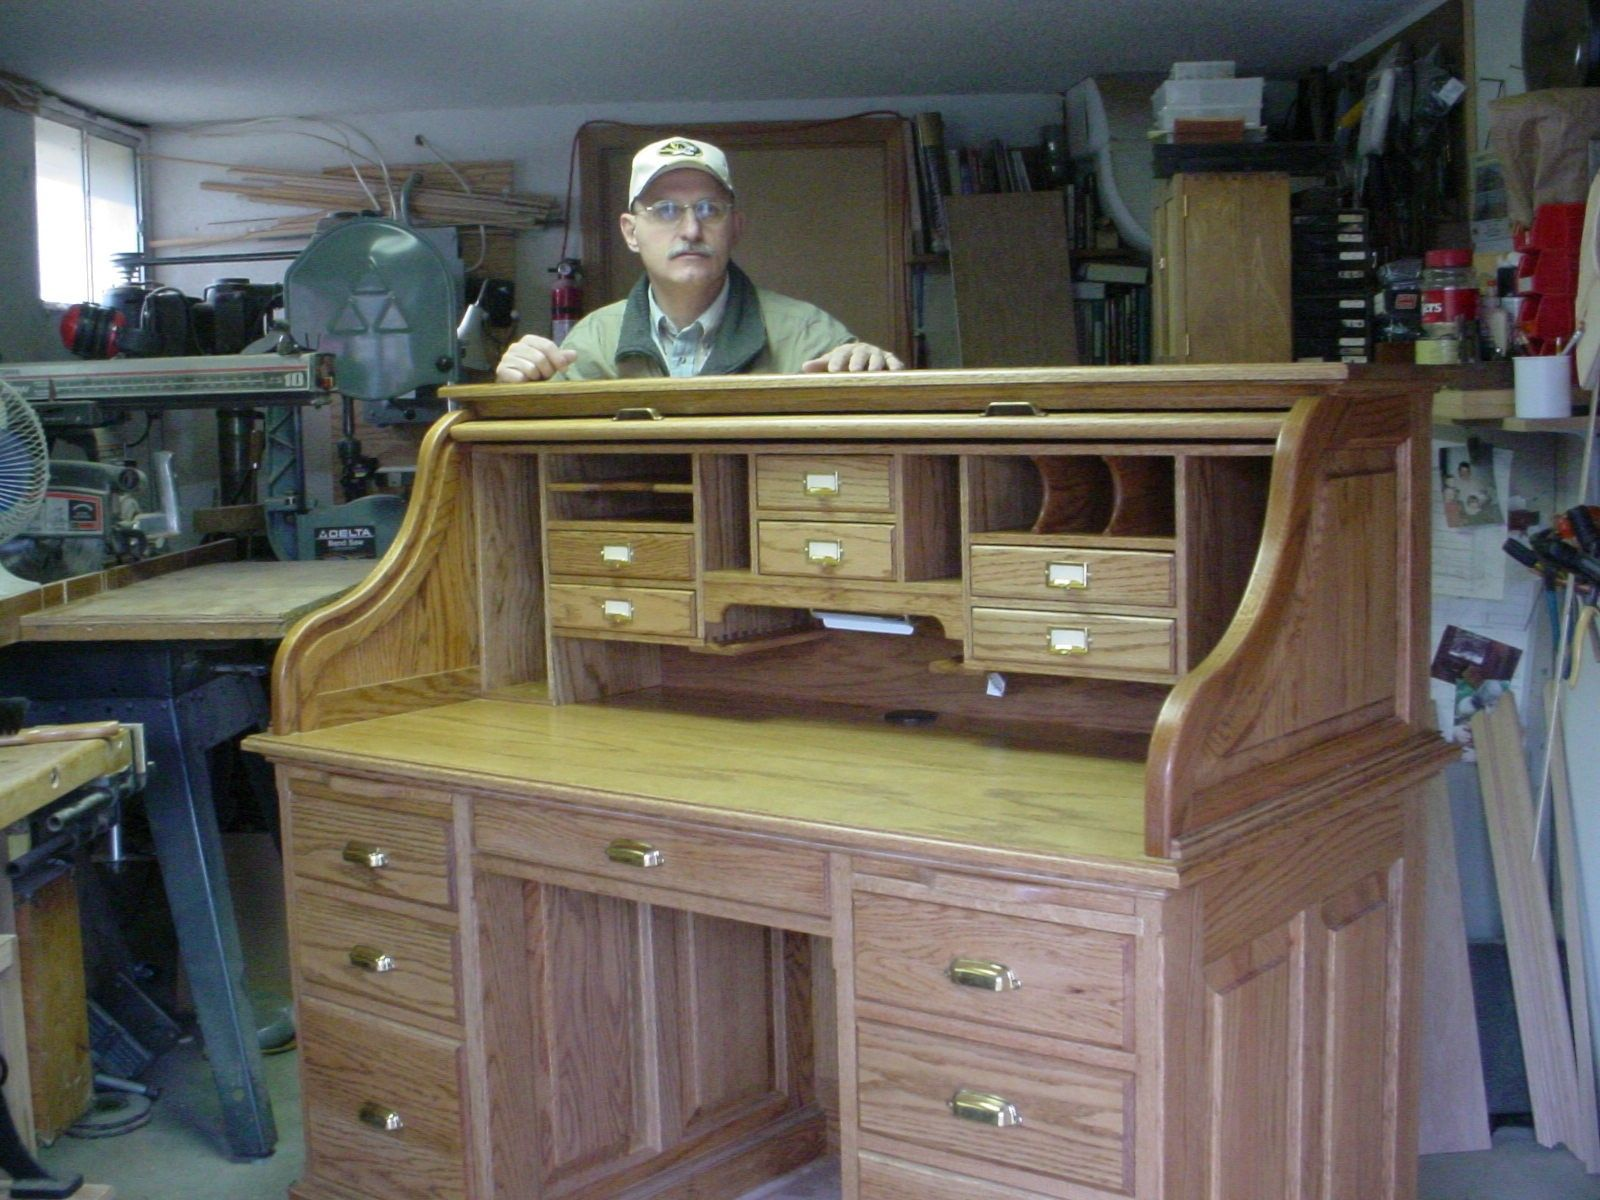 Abner Cutler Norm Shows You How To Build A Roll Top Desk Part 1 Of 2 And Was Wondering If You Co Wood Projects For Kids Woodworking Desk Woodworking Desk Plans